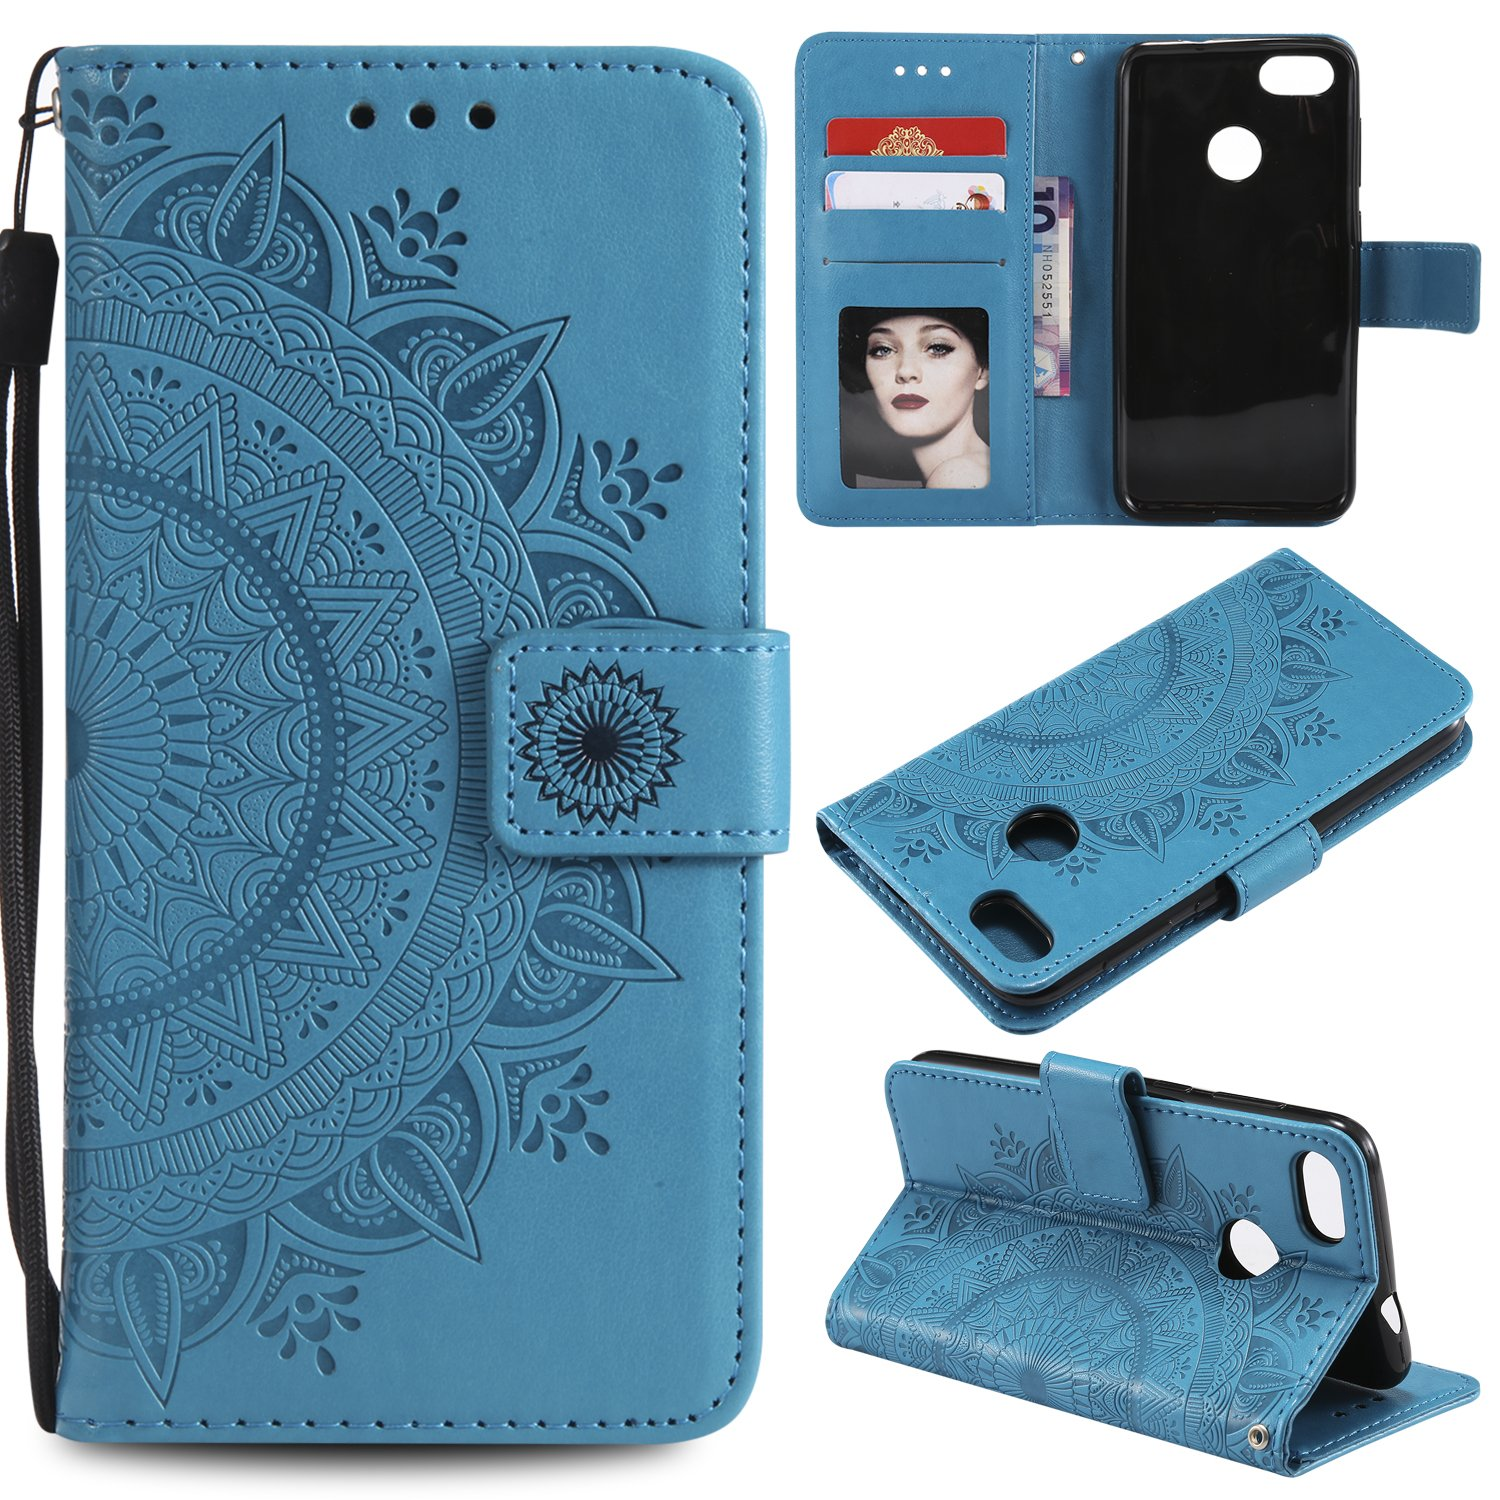 Floral Wallet Case for Huawei P9 Lite Mini,Strap Flip Case for Huawei P9 Lite Mini,Leecase Embossed Totem Flower Design Pu Leather Bookstyle Stand Flip Case for Huawei P9 Lite Mini-Blue